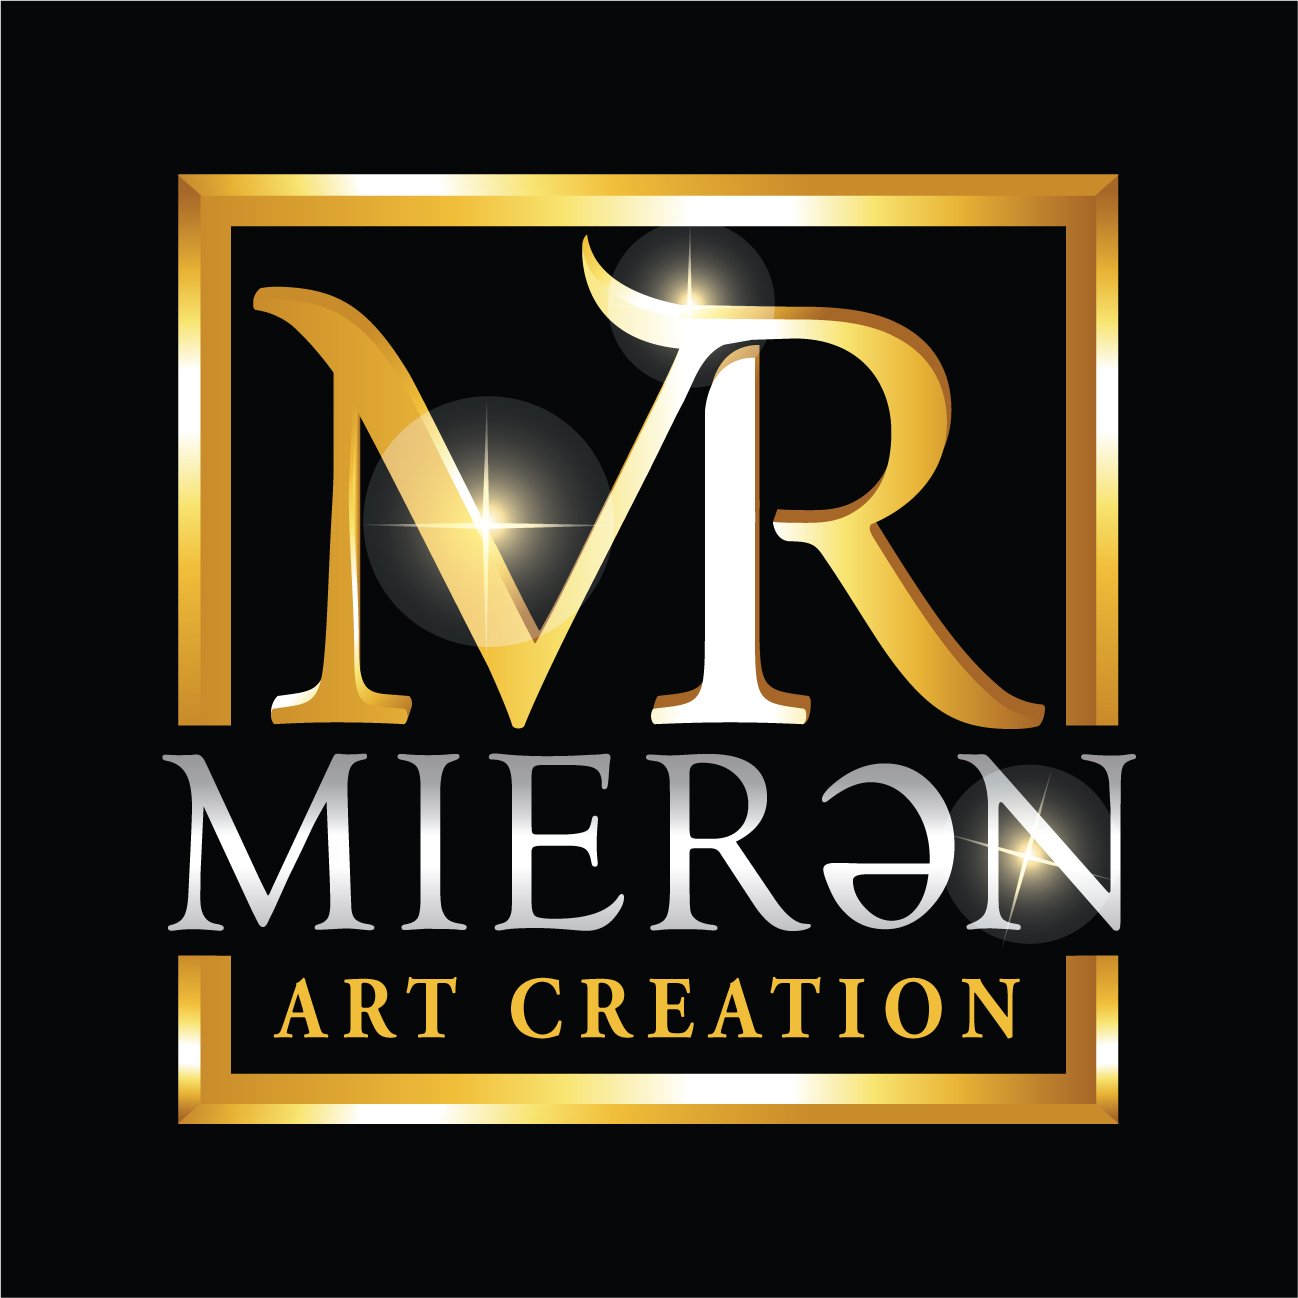 MIEREN ART CREATION image